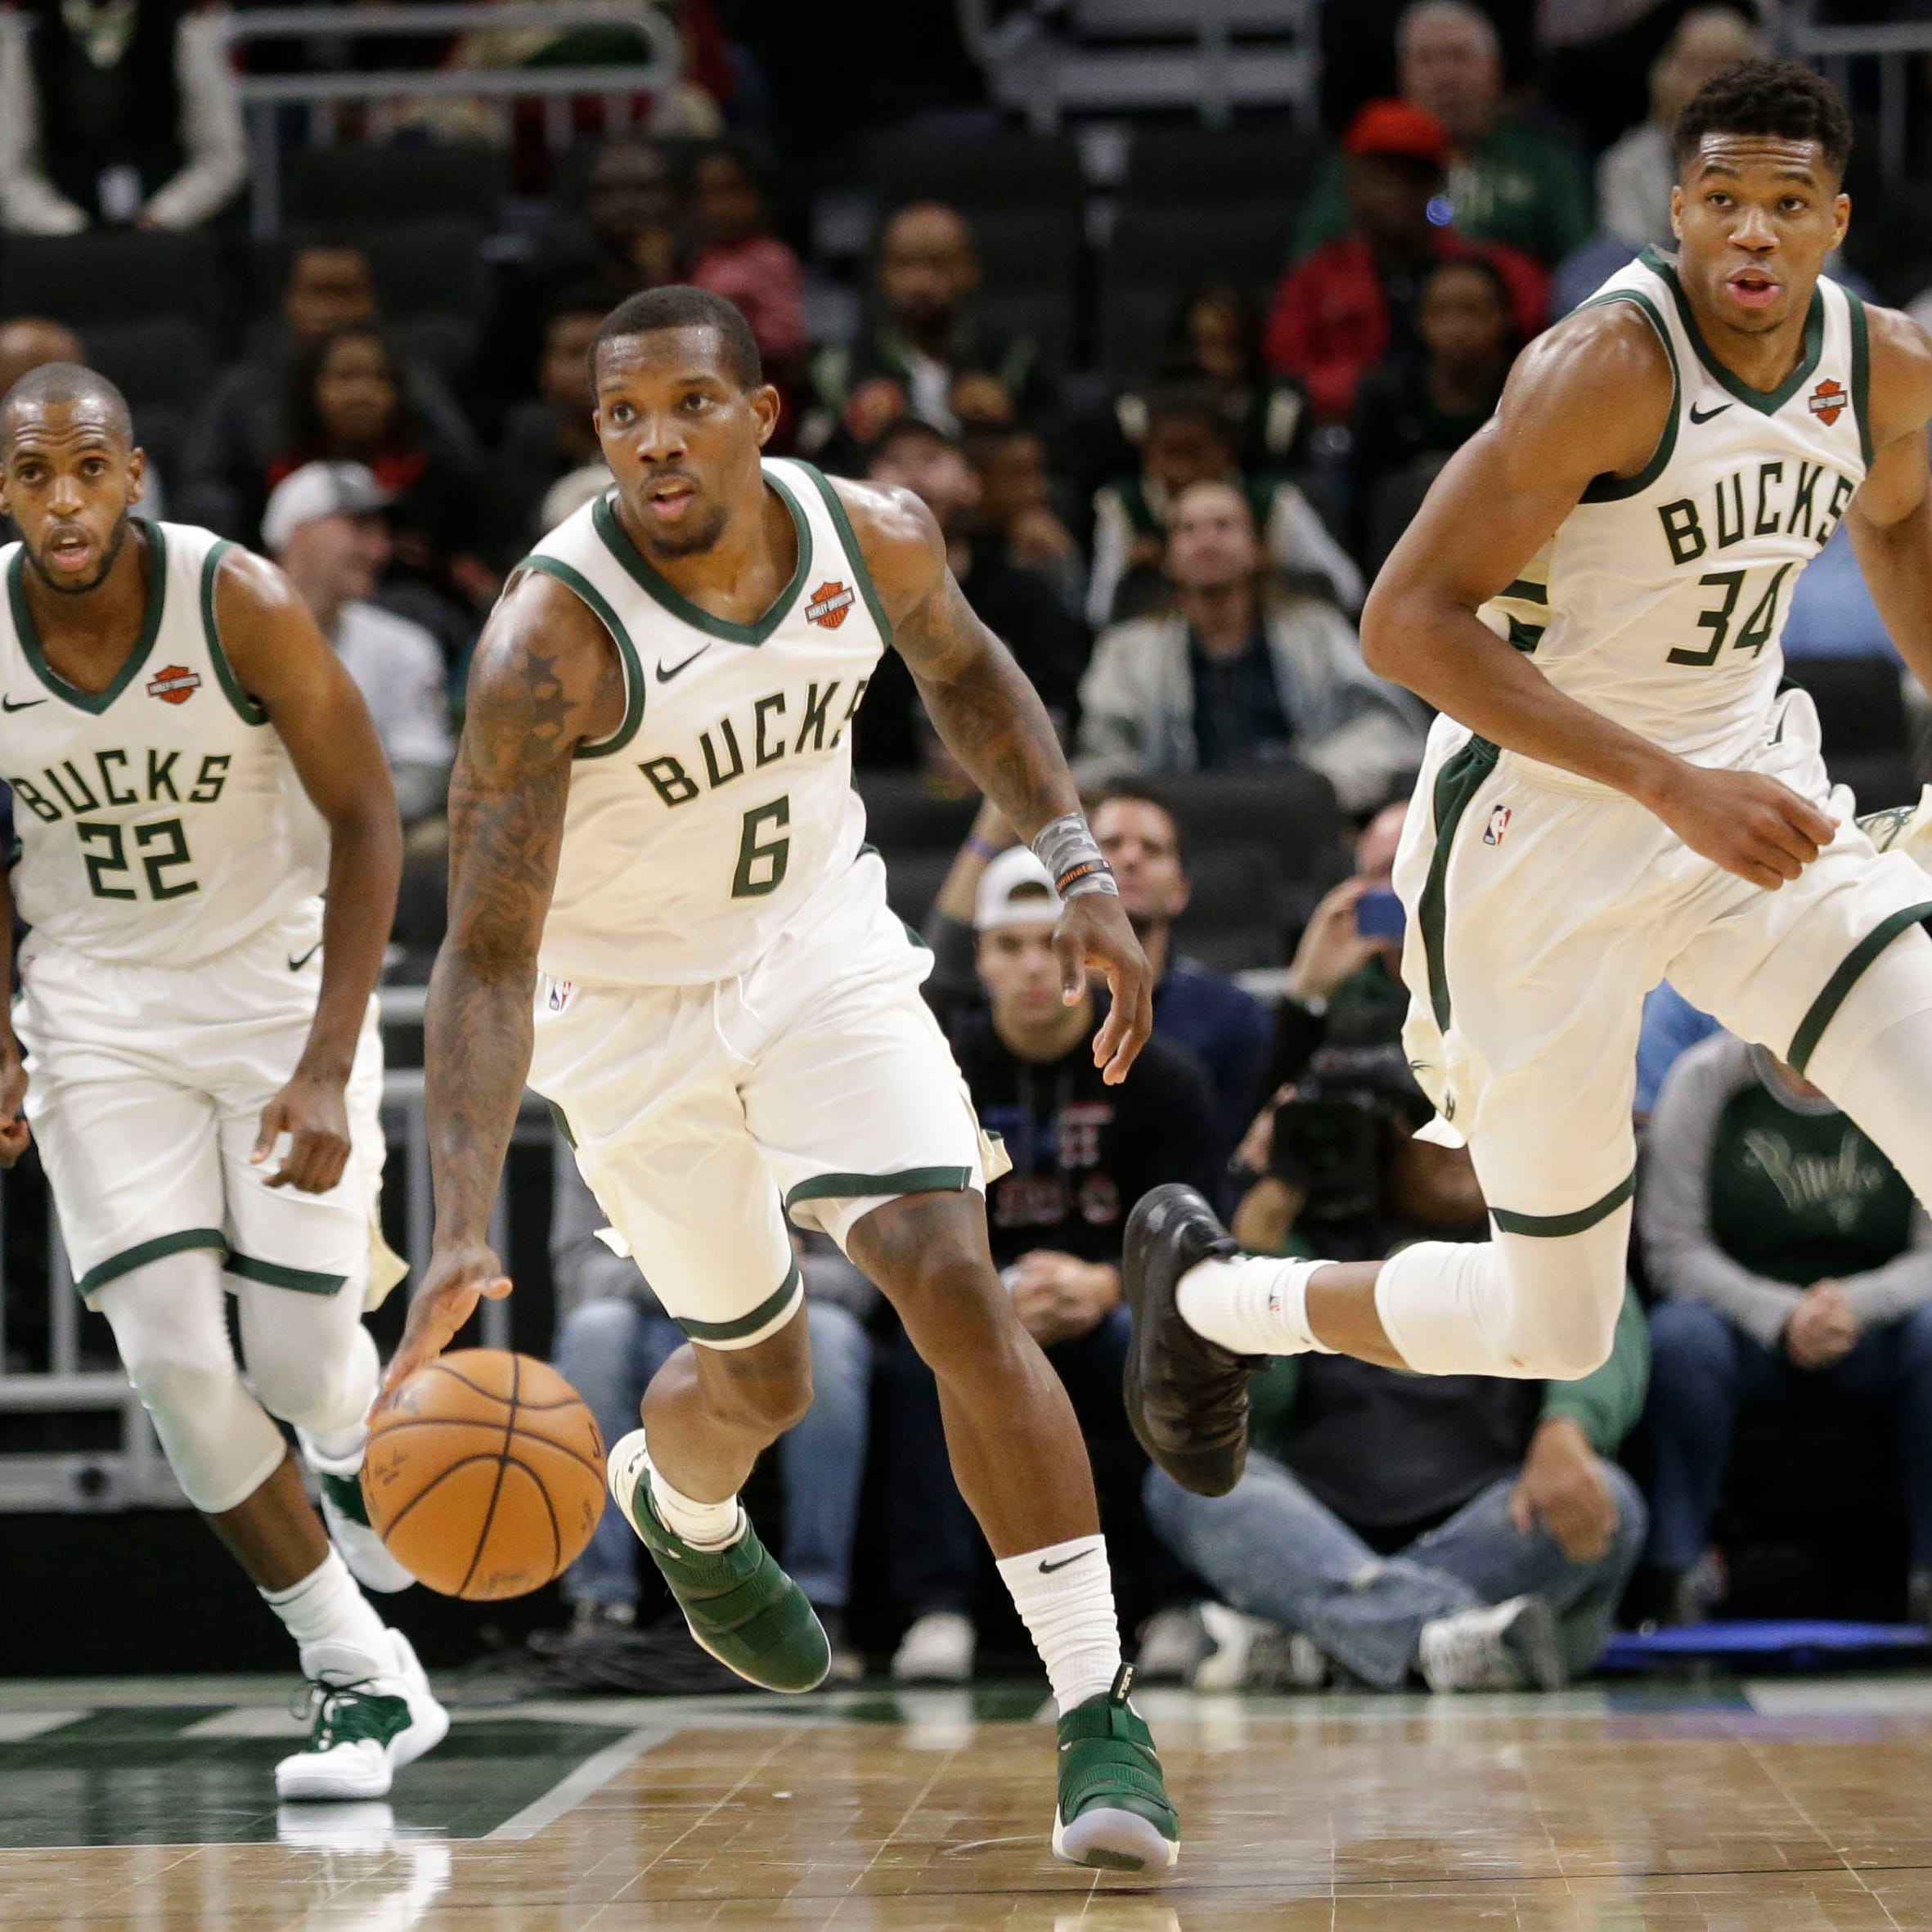 Fresh off successful preseason, Bucks aim to show it wasn't fool's gold